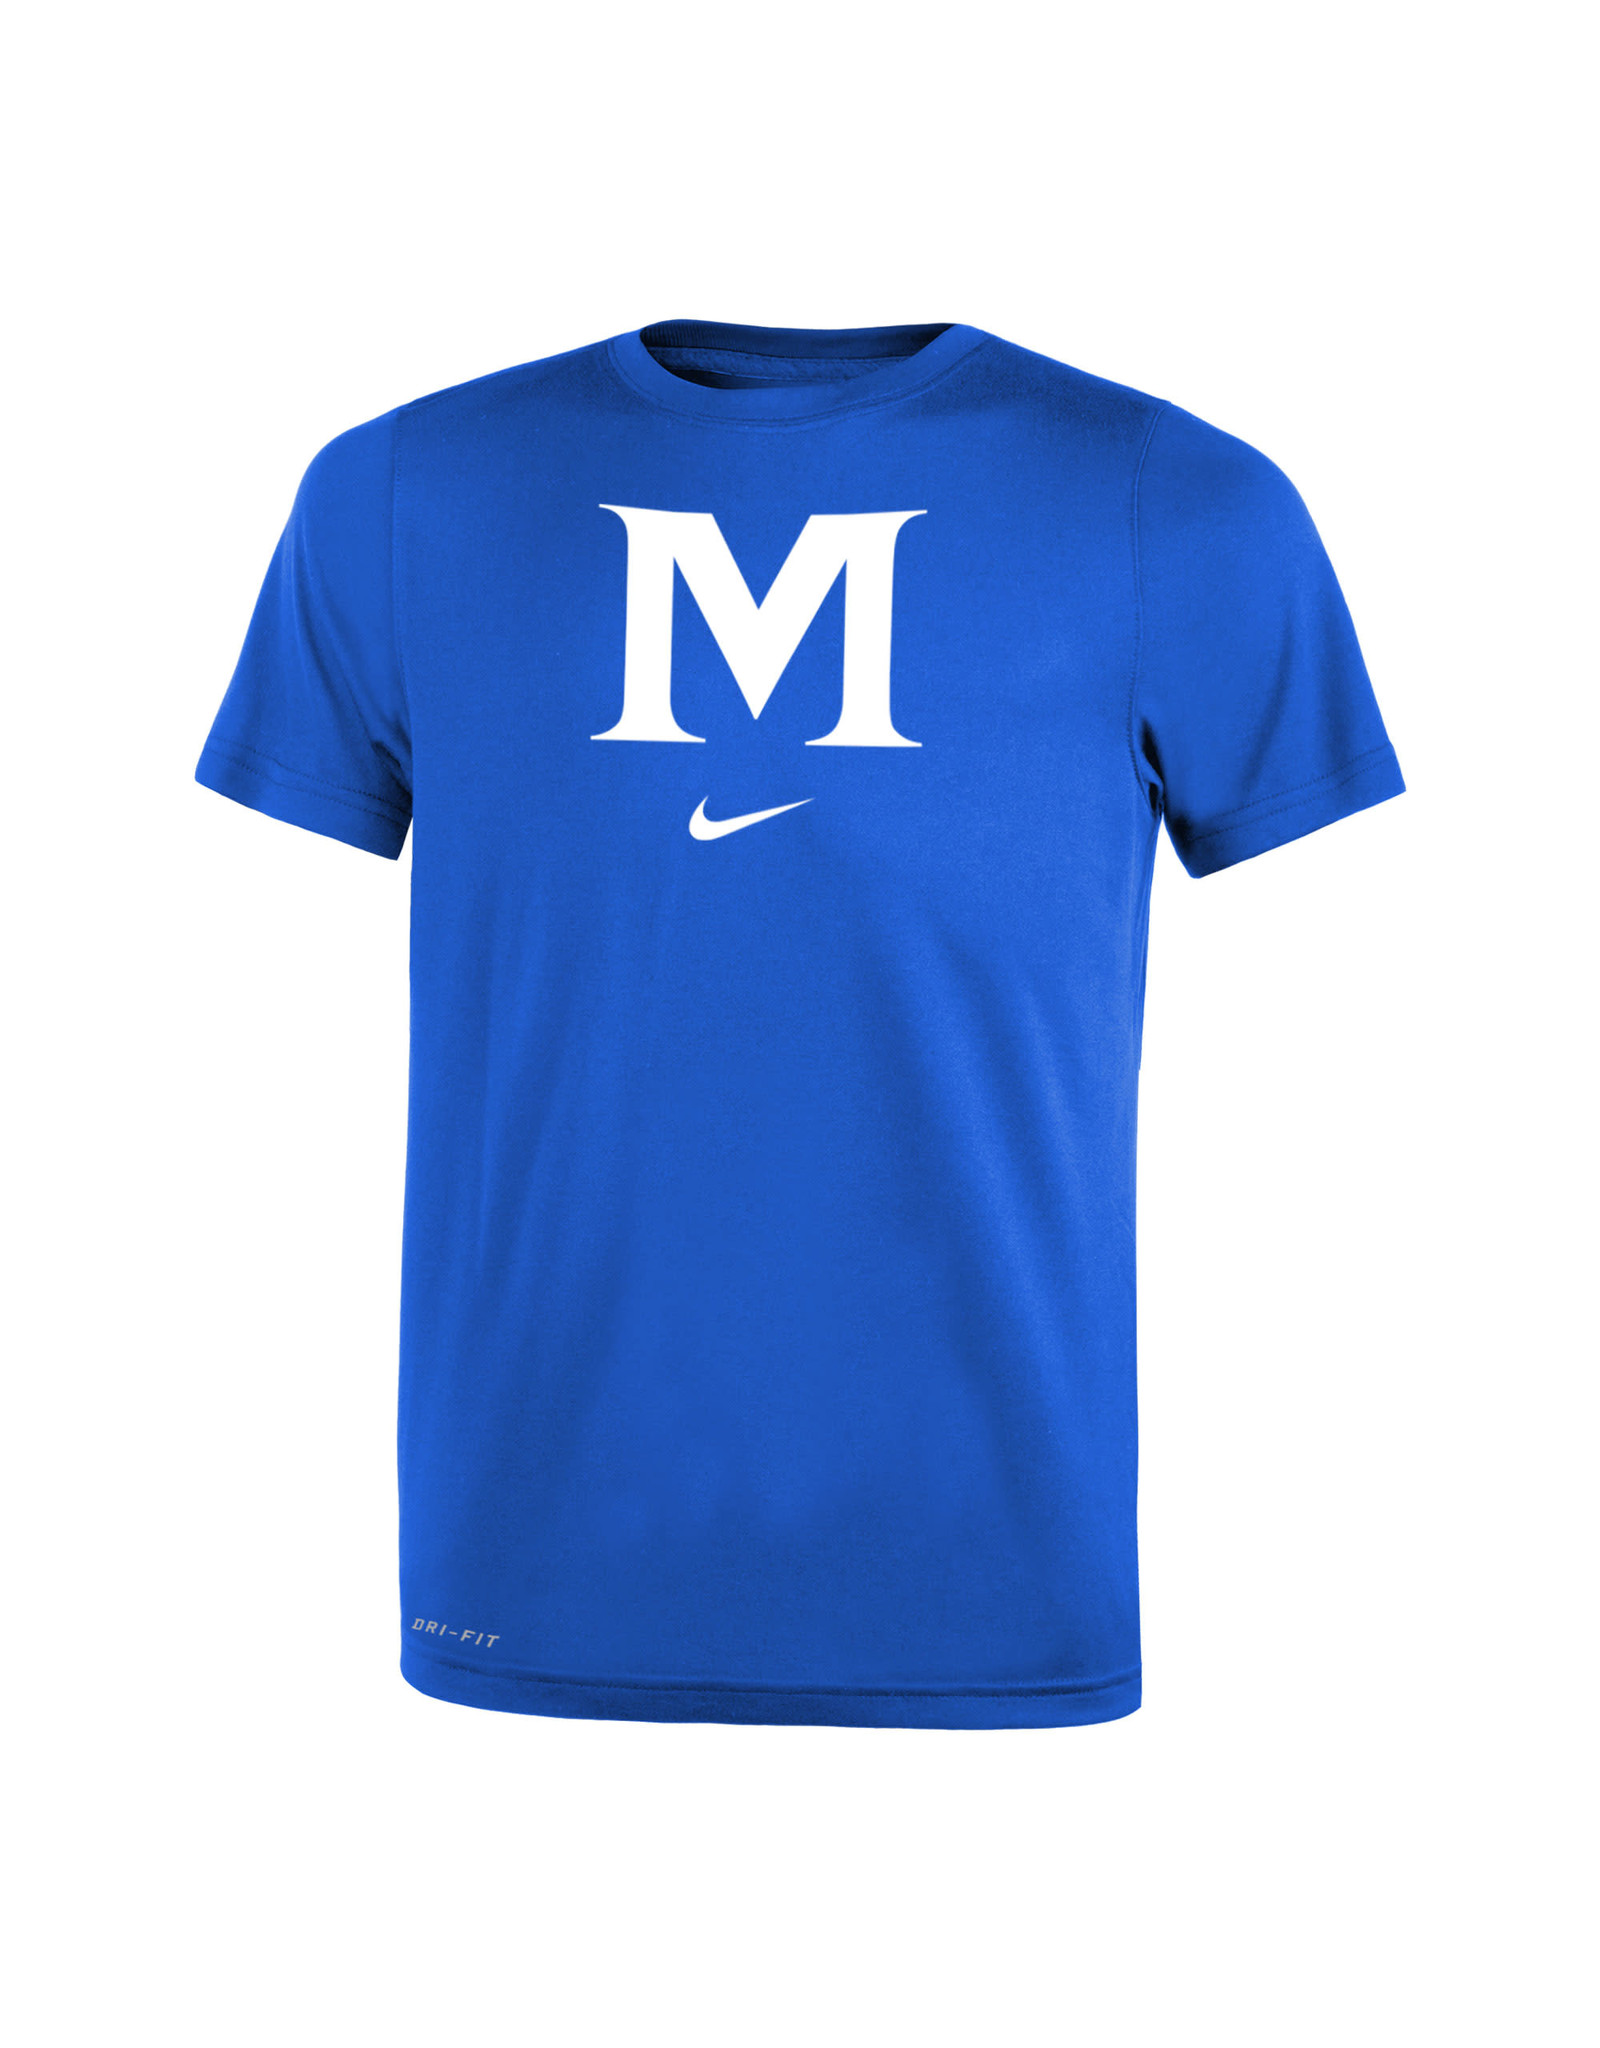 NIKE NIKE POWER M LITTLE T-SHIRT